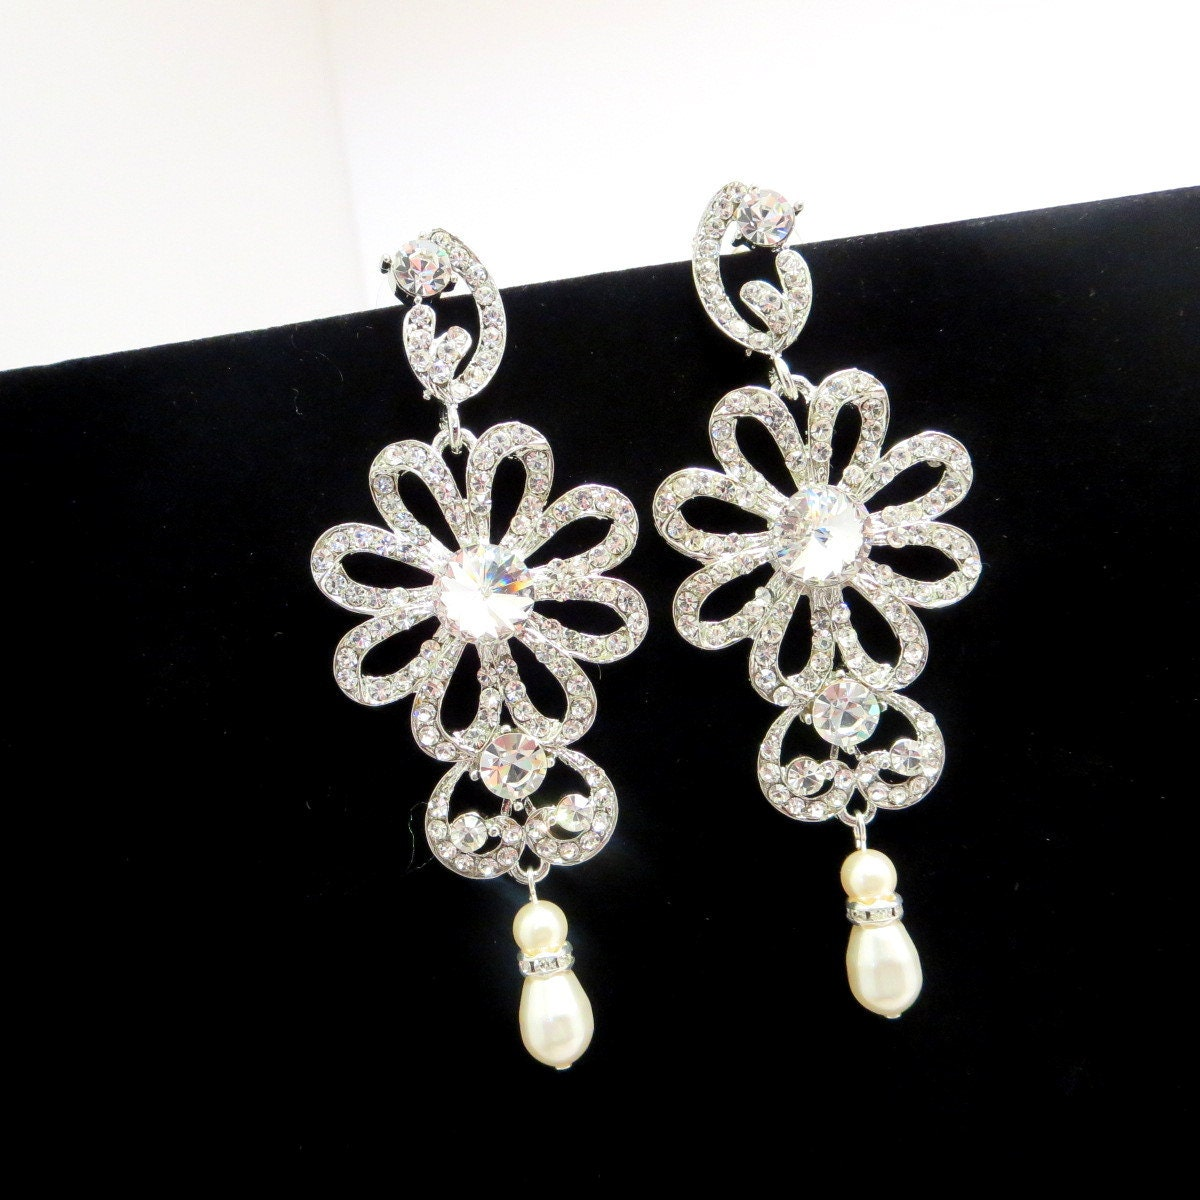 bridal chandelier earrings wedding earrings rhinestone